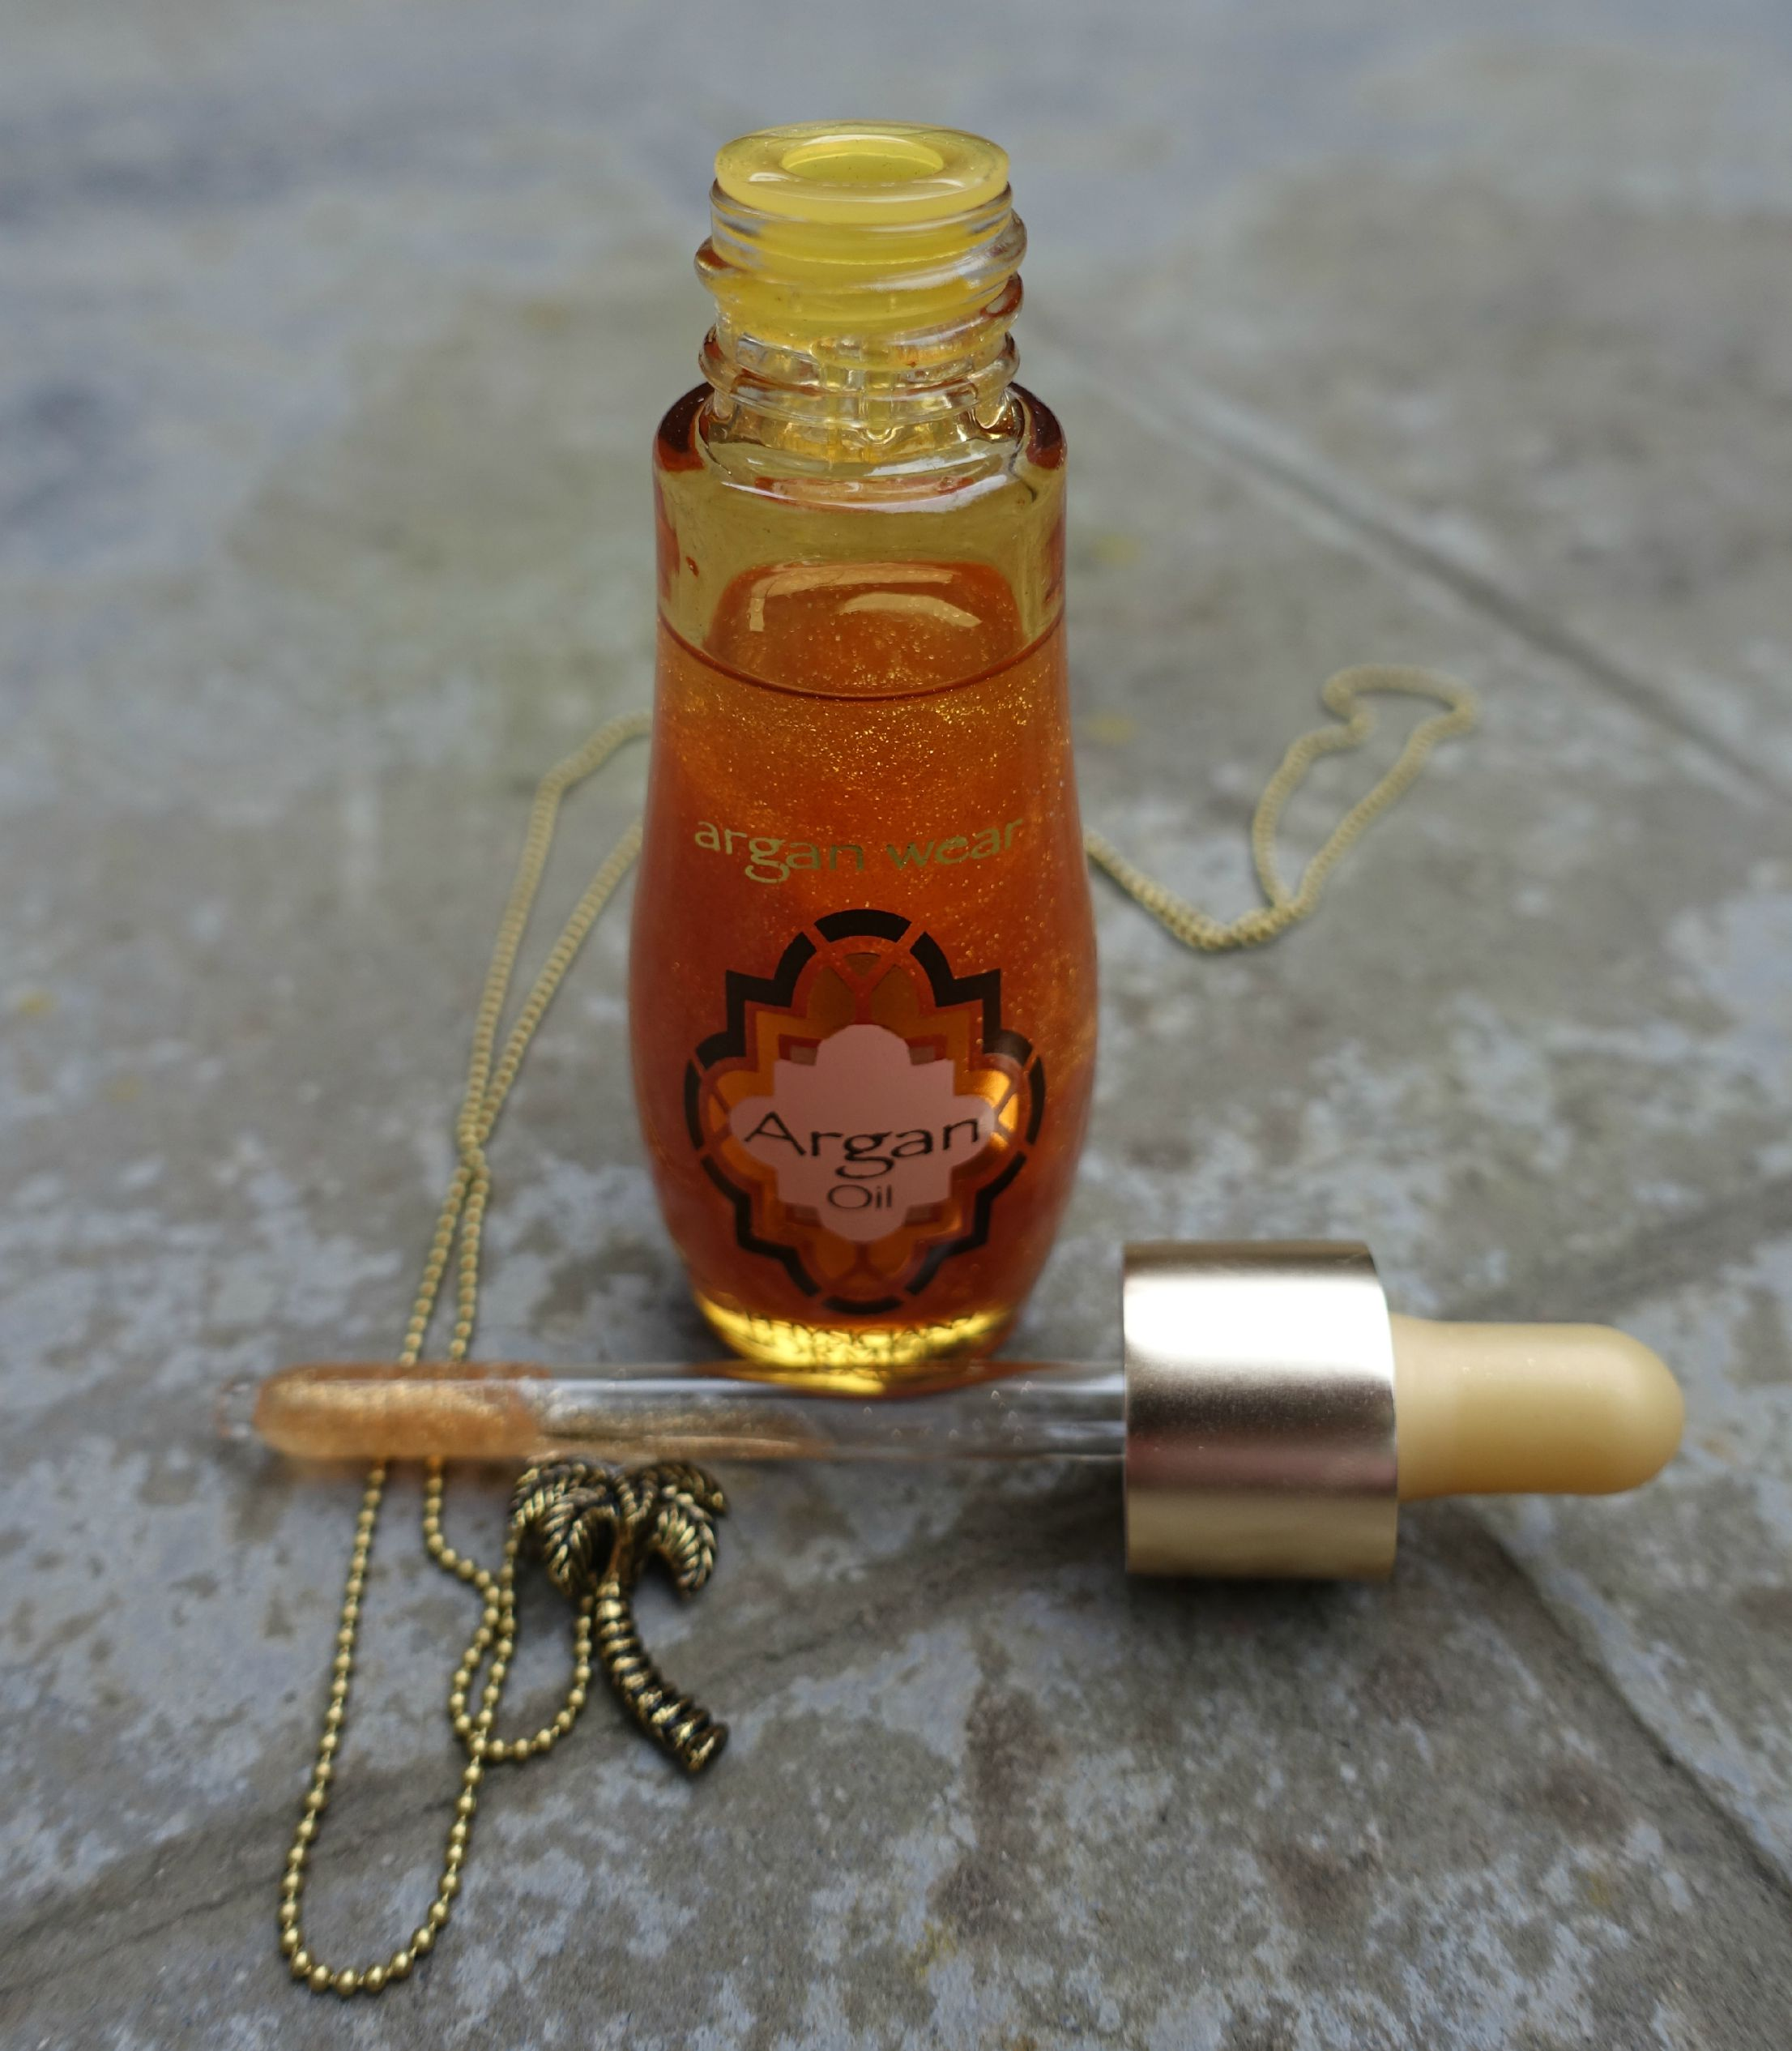 physicians formula argan oil touch of gold review